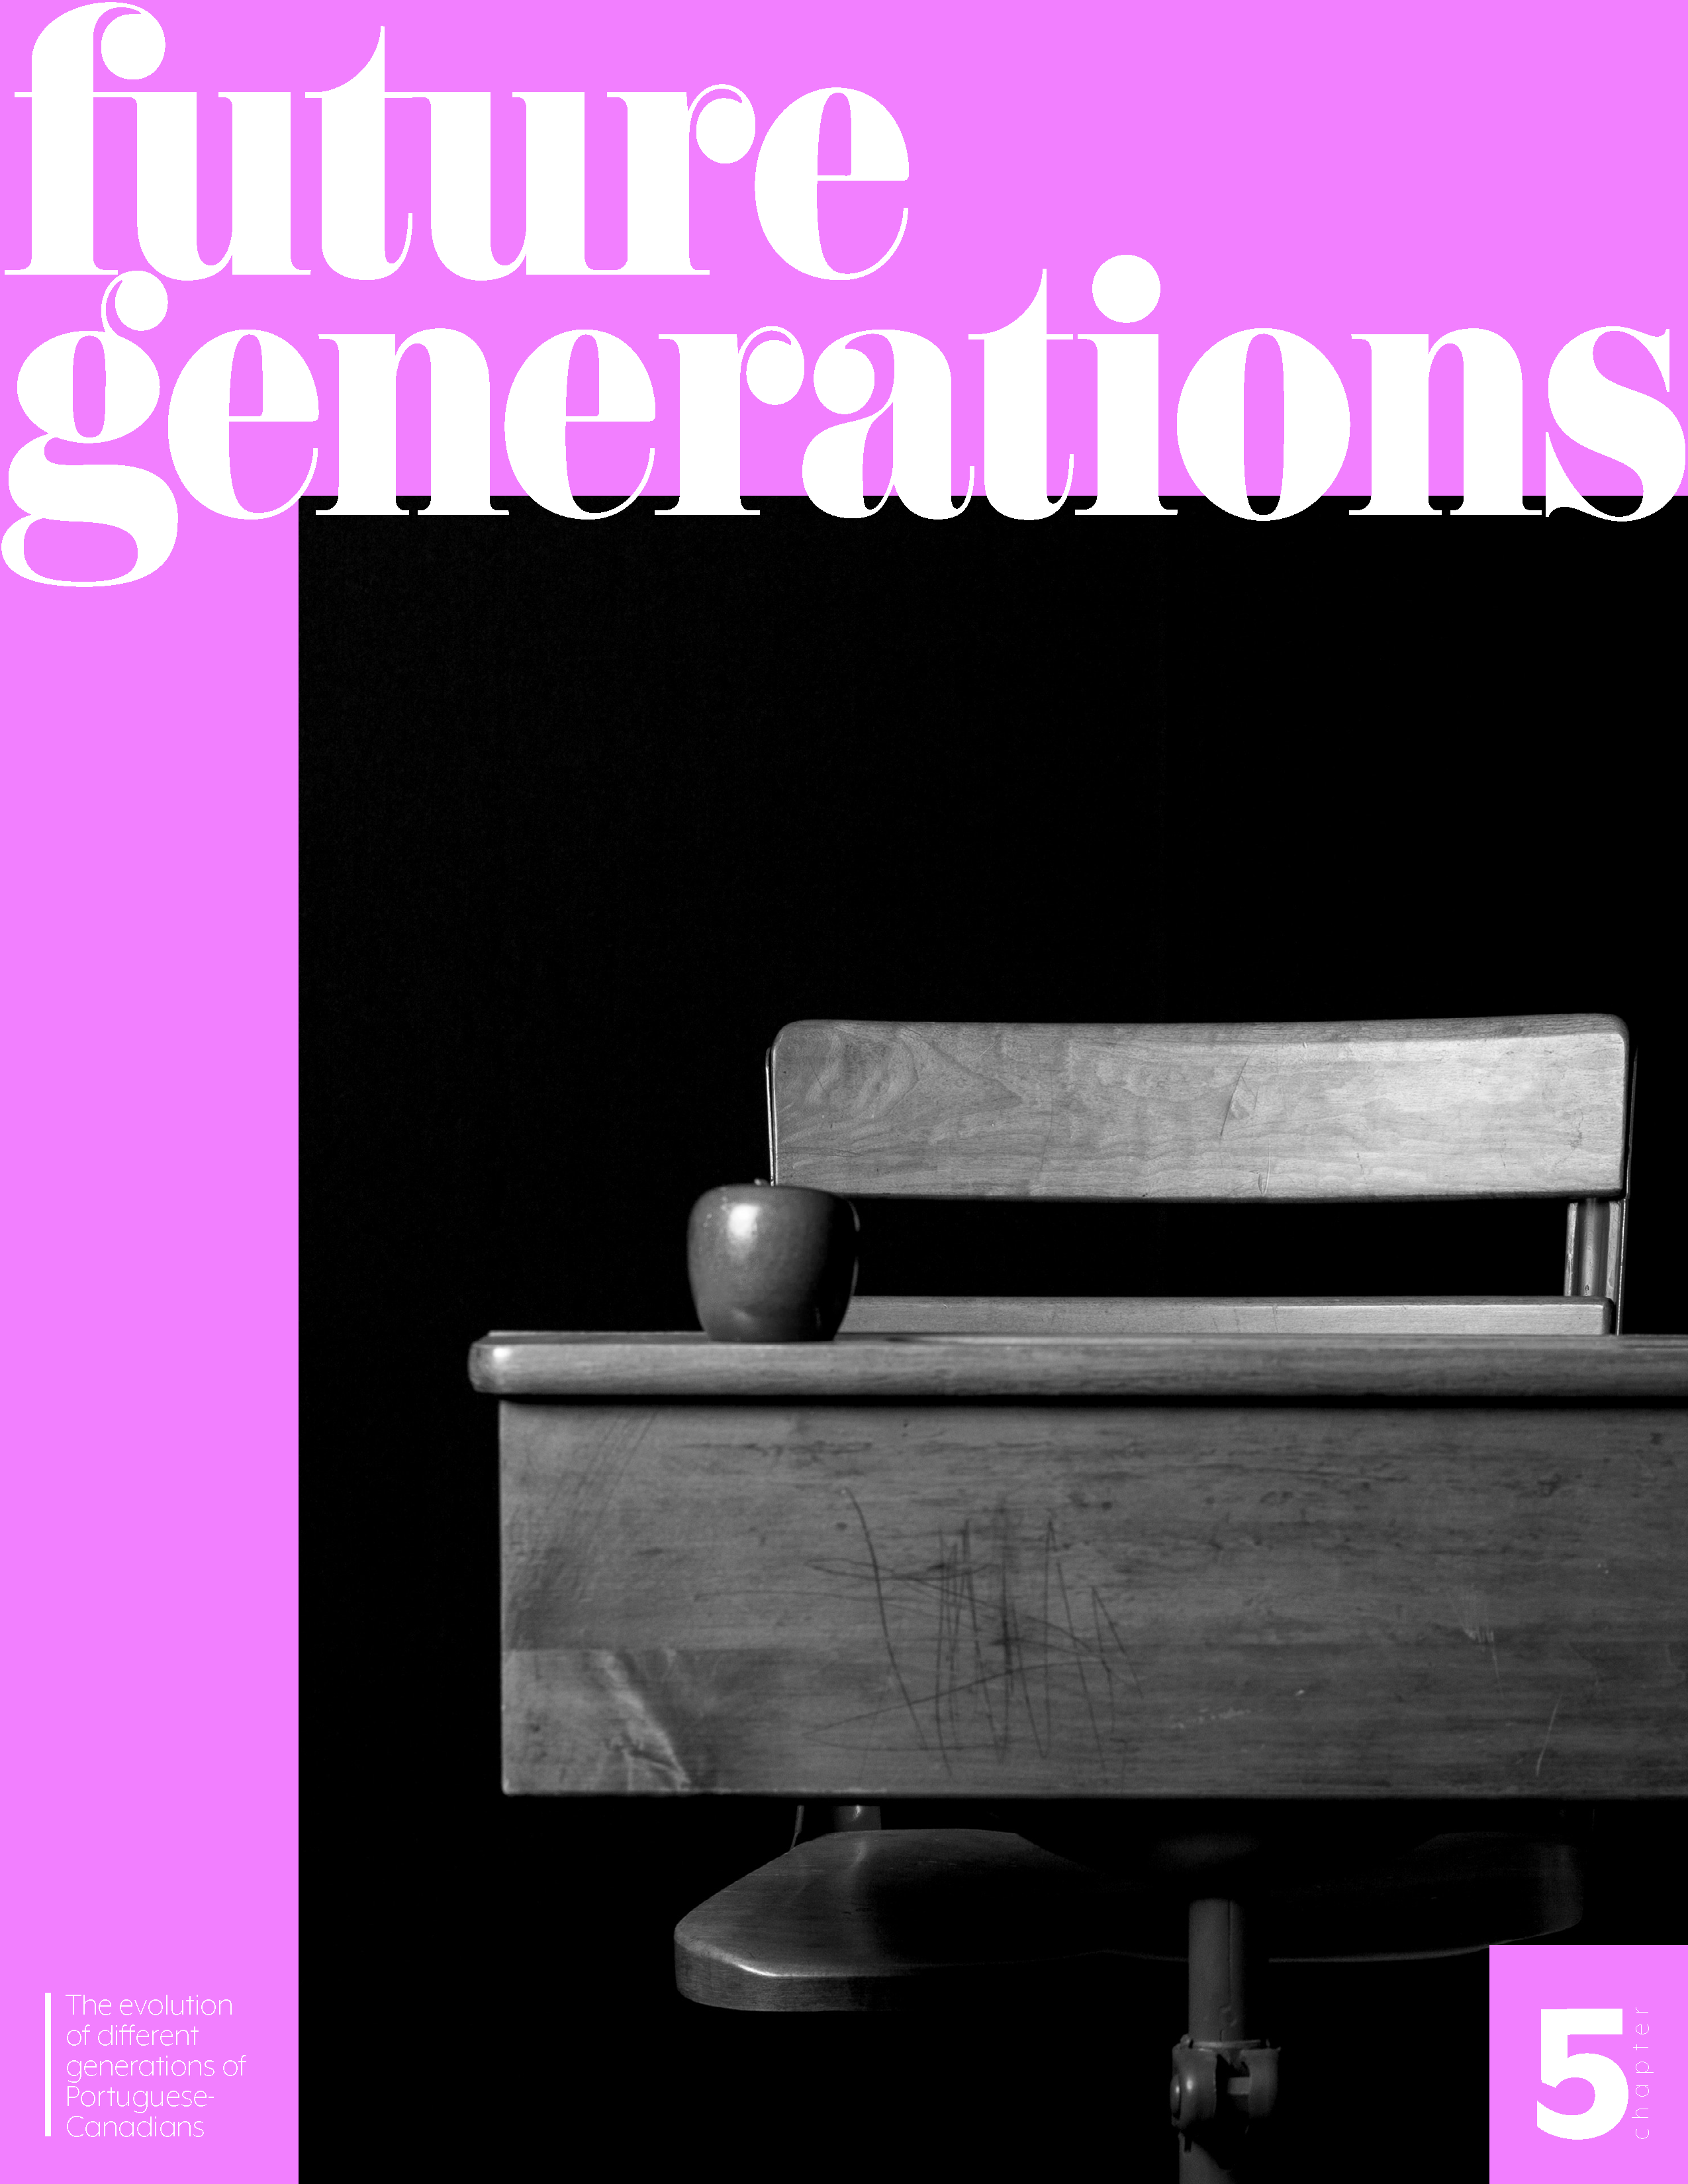 CHAPTER 5: Future Generations